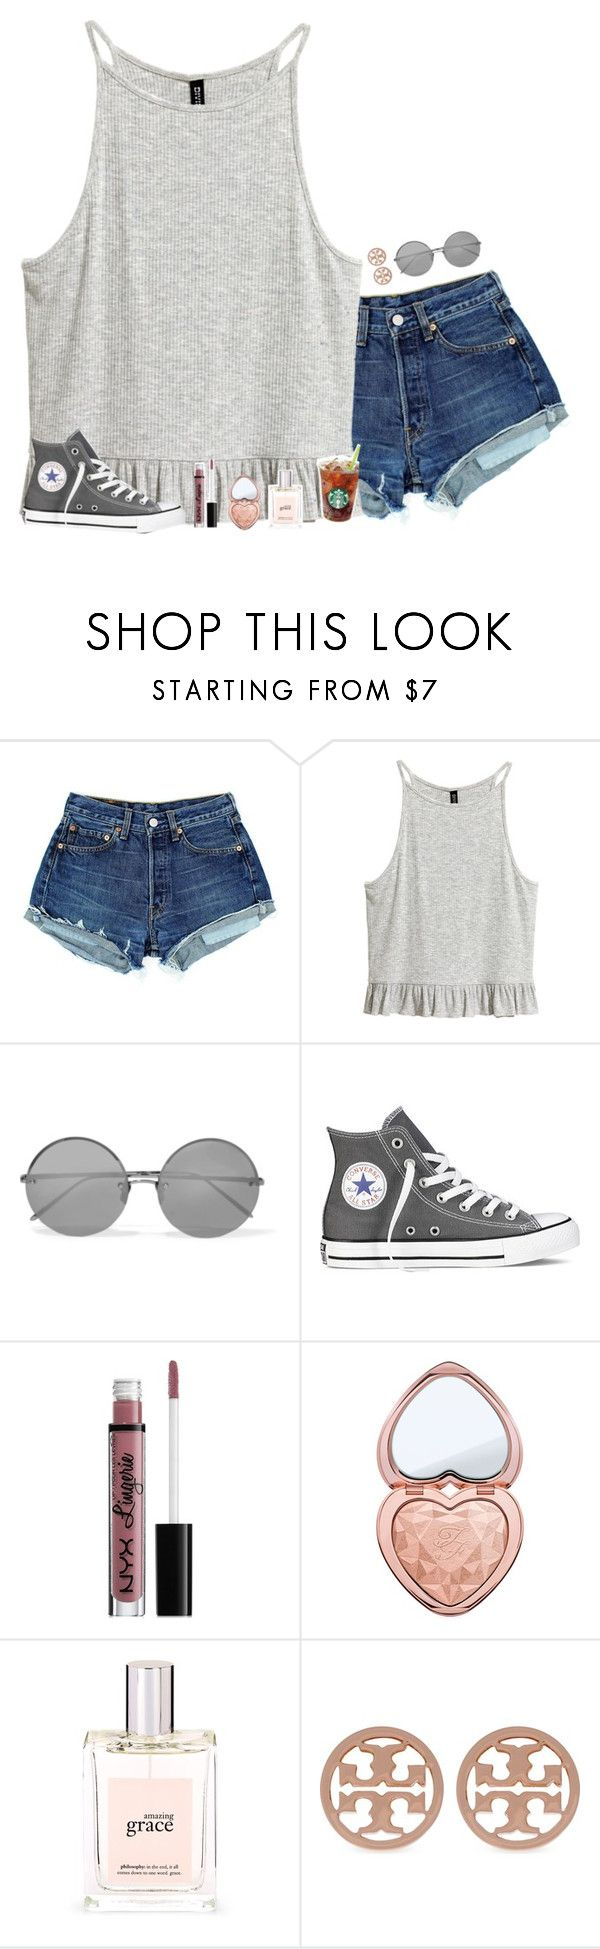 """the bravest thing I ever did was run"" by pineapple5415 ❤ liked on Polyvore featuring Linda Farrow, Converse, NYX, Too Faced Cosmetics, philosophy and Tory Burch"